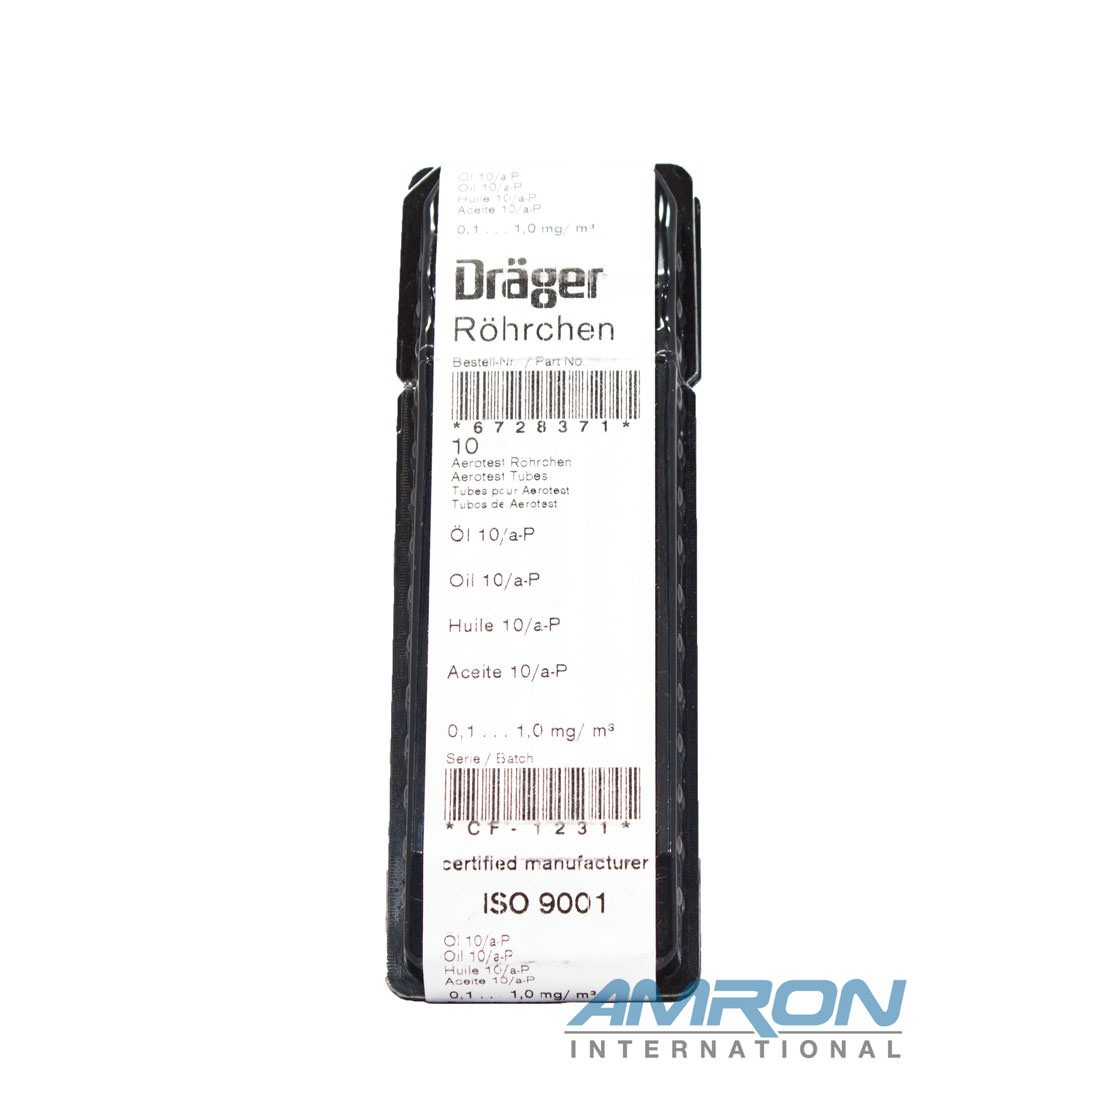 Drager-Tube Oil 10/a-P